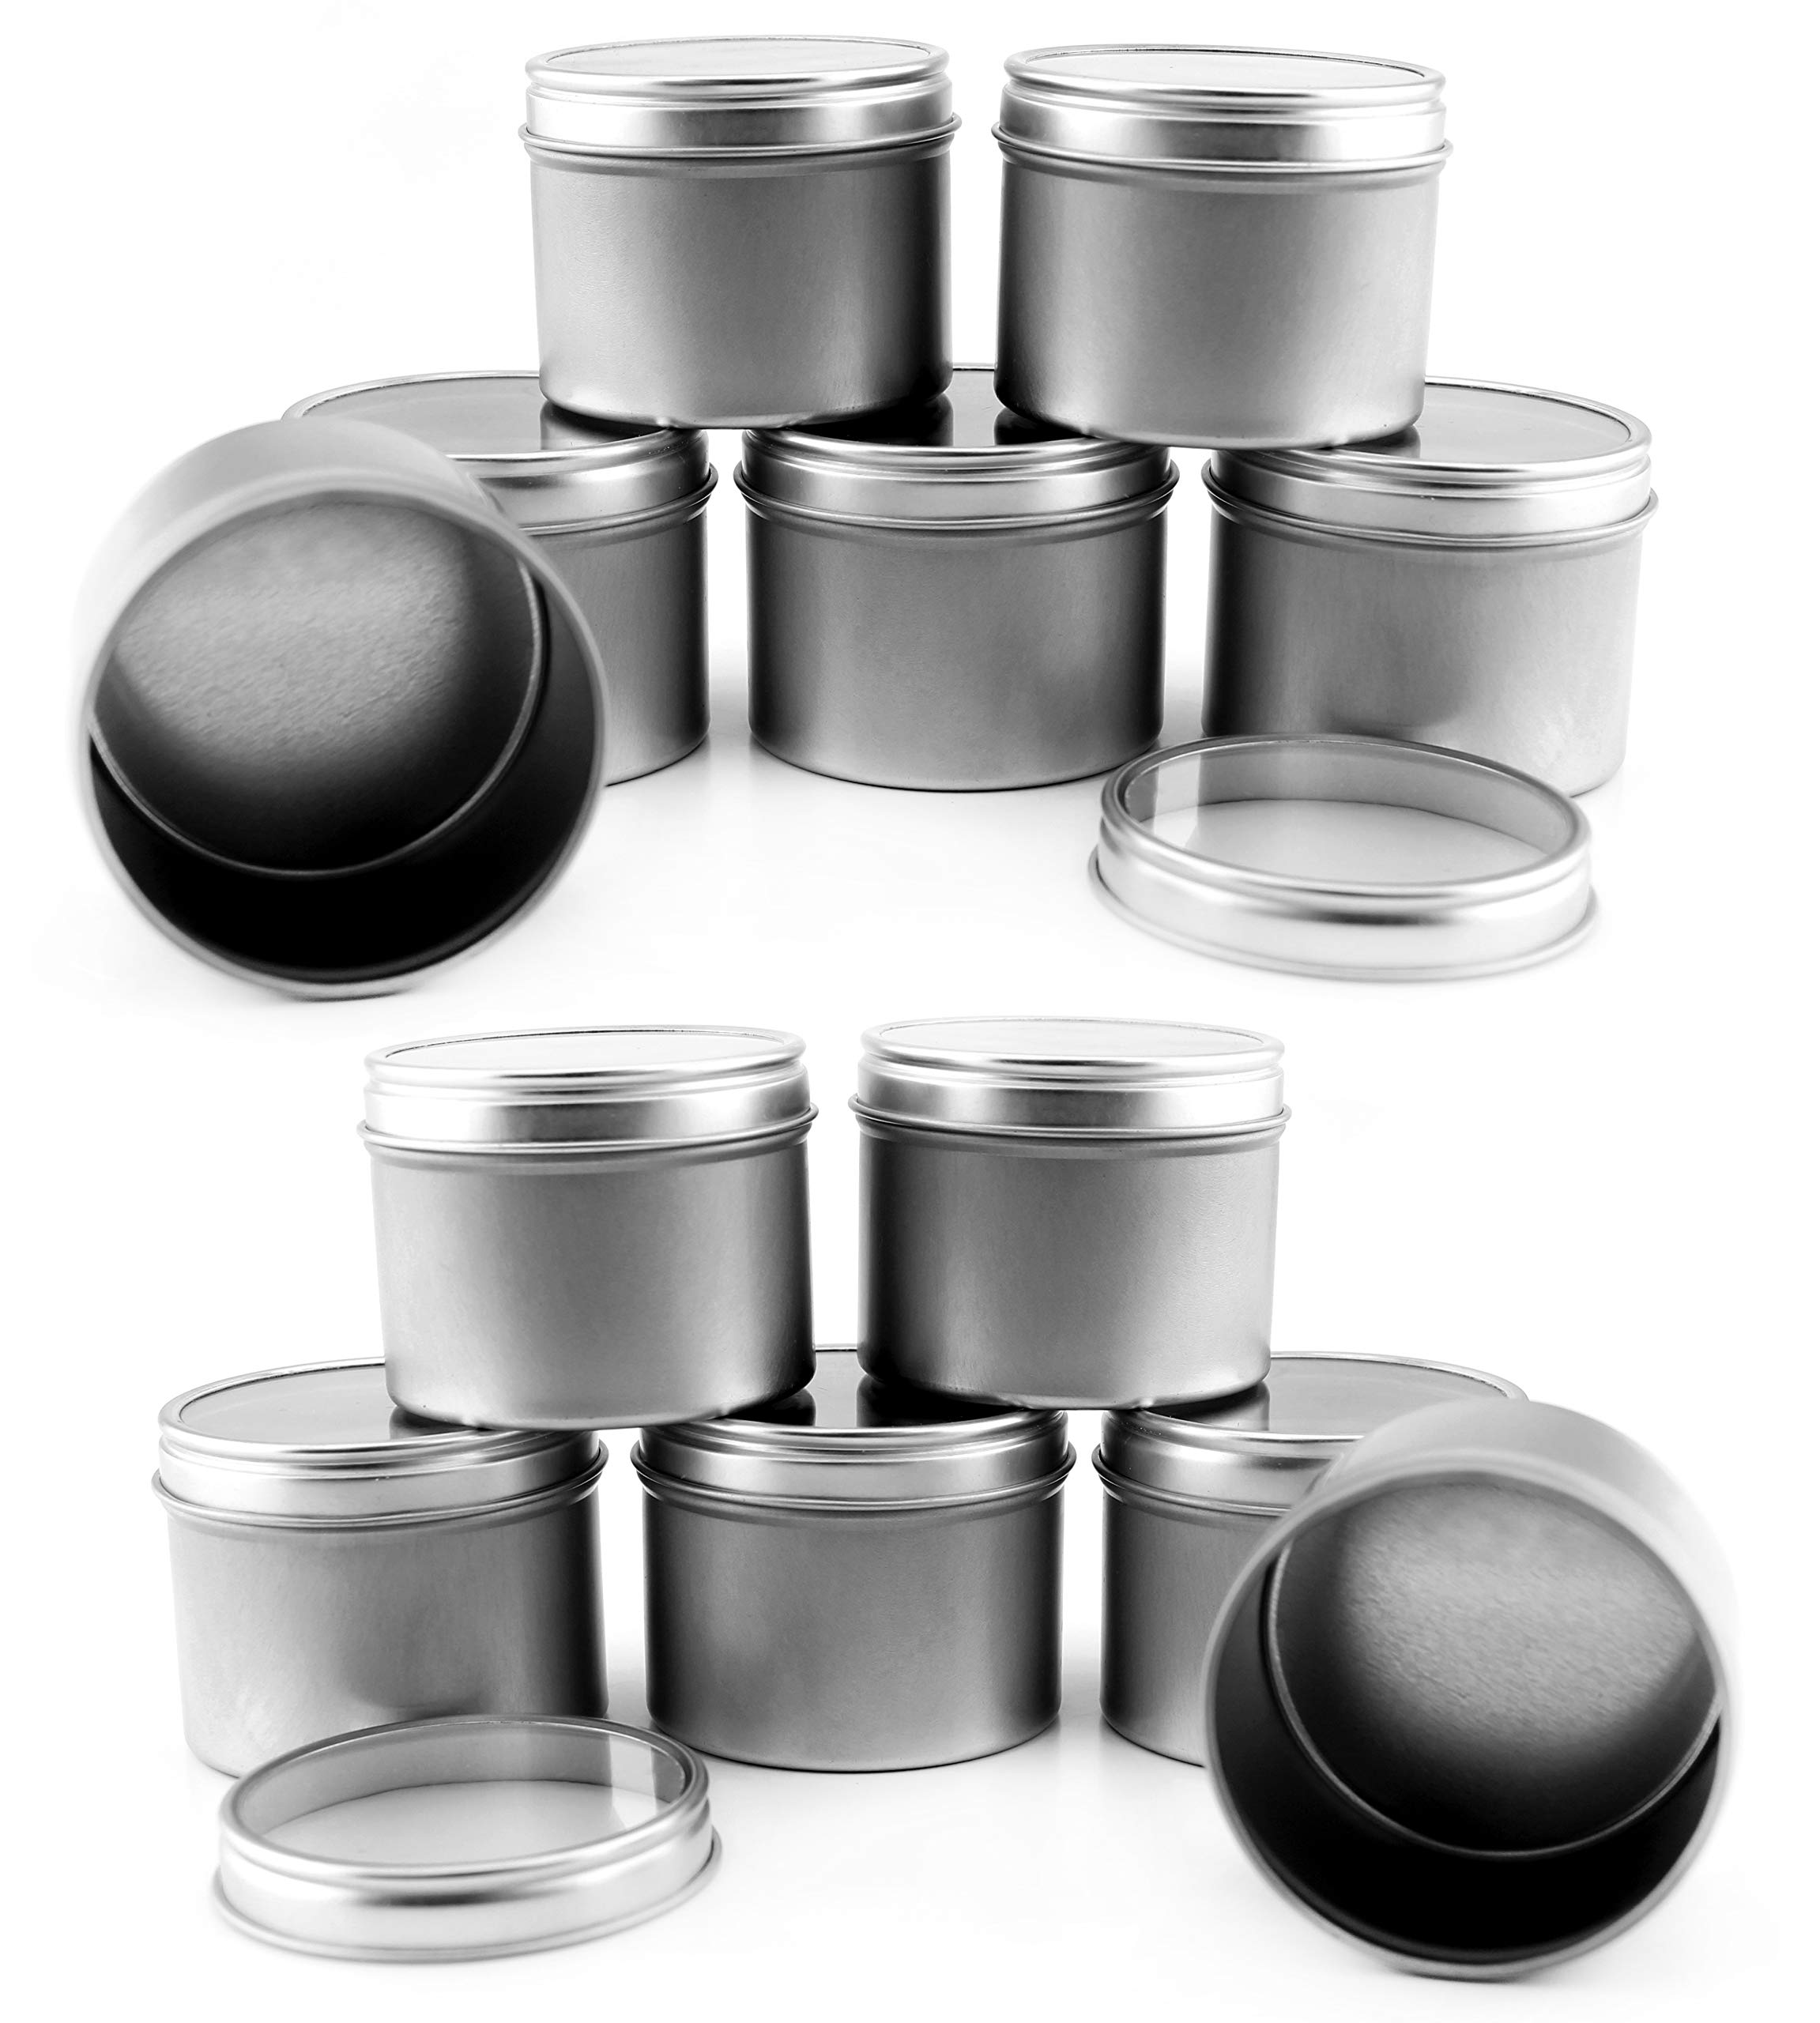 4-Ounce Round Metal Tins w/View Window Lids (12-Pack); Silver Tins w/Clear Lids